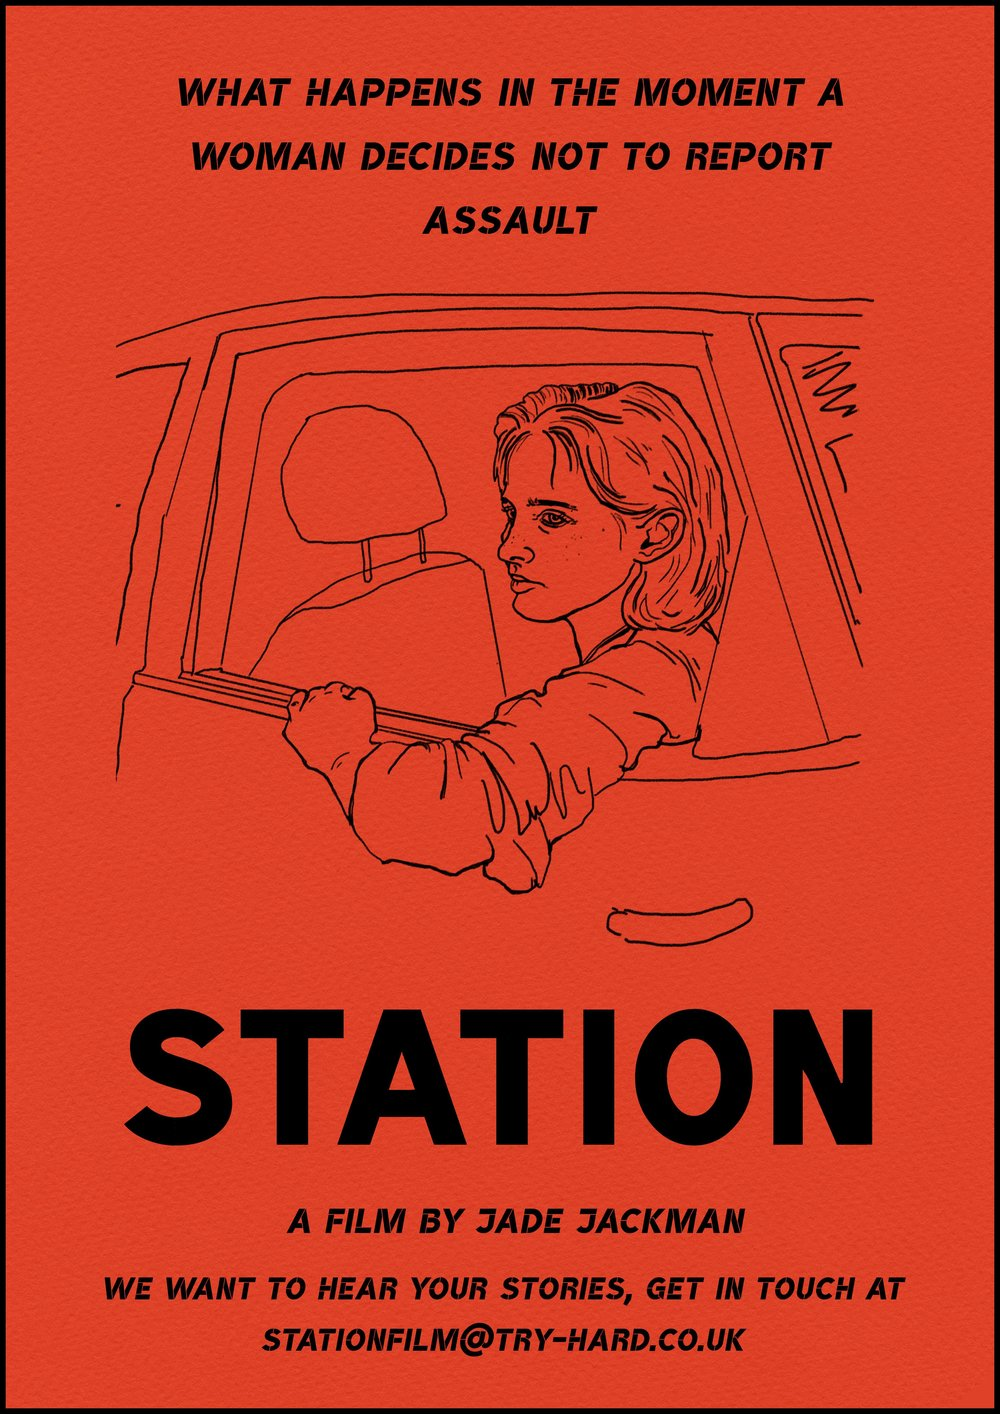 STATION - directed by Jade Jackmana hybrid documentary that explores what happens in the moment a woman decides not to report assault.short film / documentary / 2019In development with Lush Filmsco-production with Black dog (RSA)